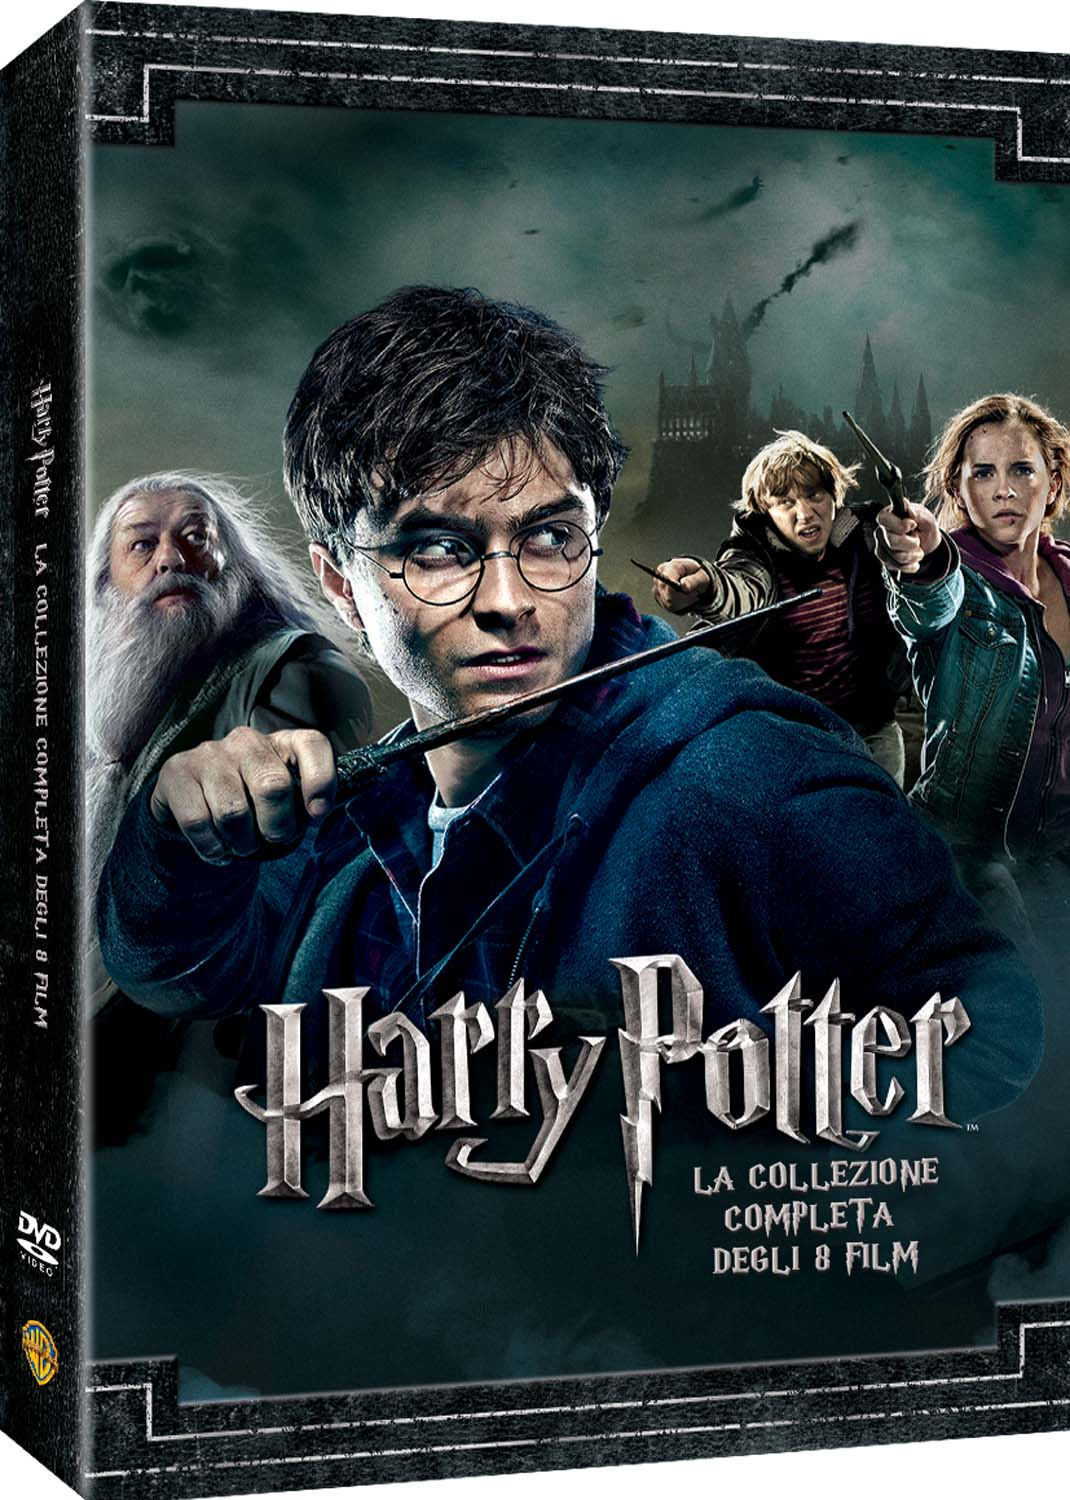 COF.HARRY POTTER COLLECTION (STANDARD EDITION) (8 DVD) (DVD)